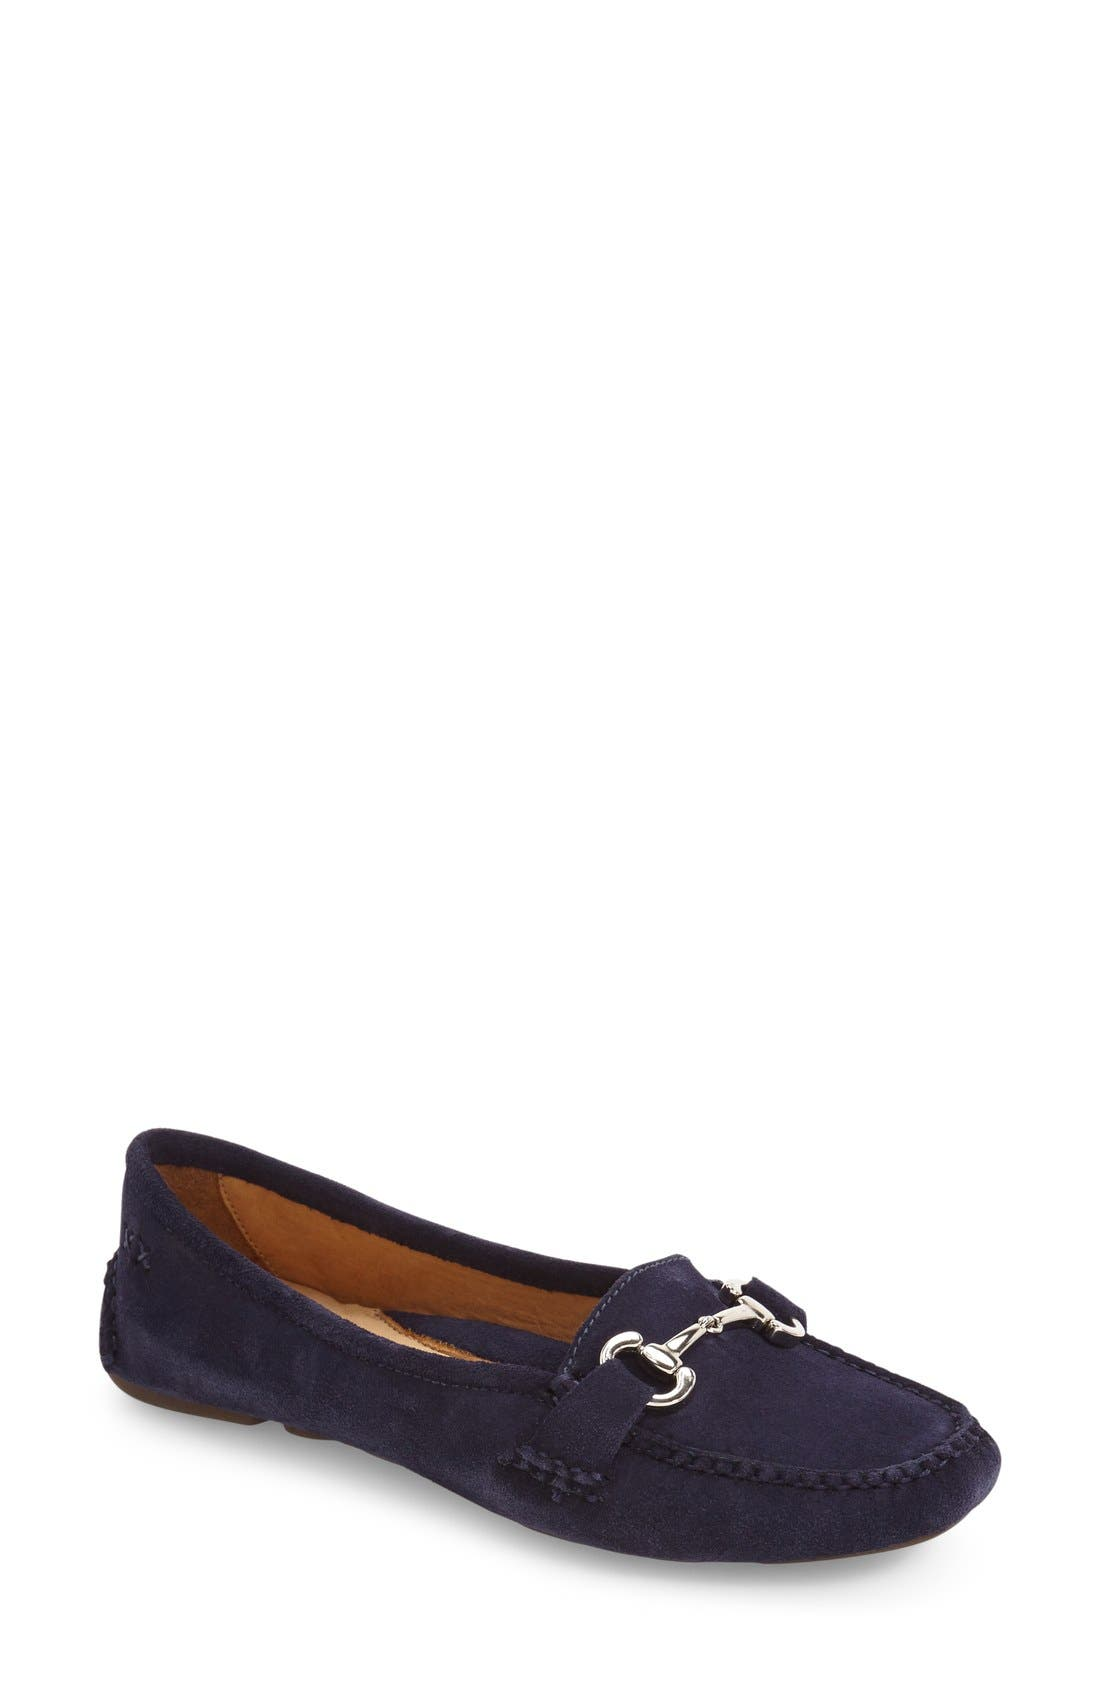 'Carrie' Loafer,                             Main thumbnail 1, color,                             Navy Suede